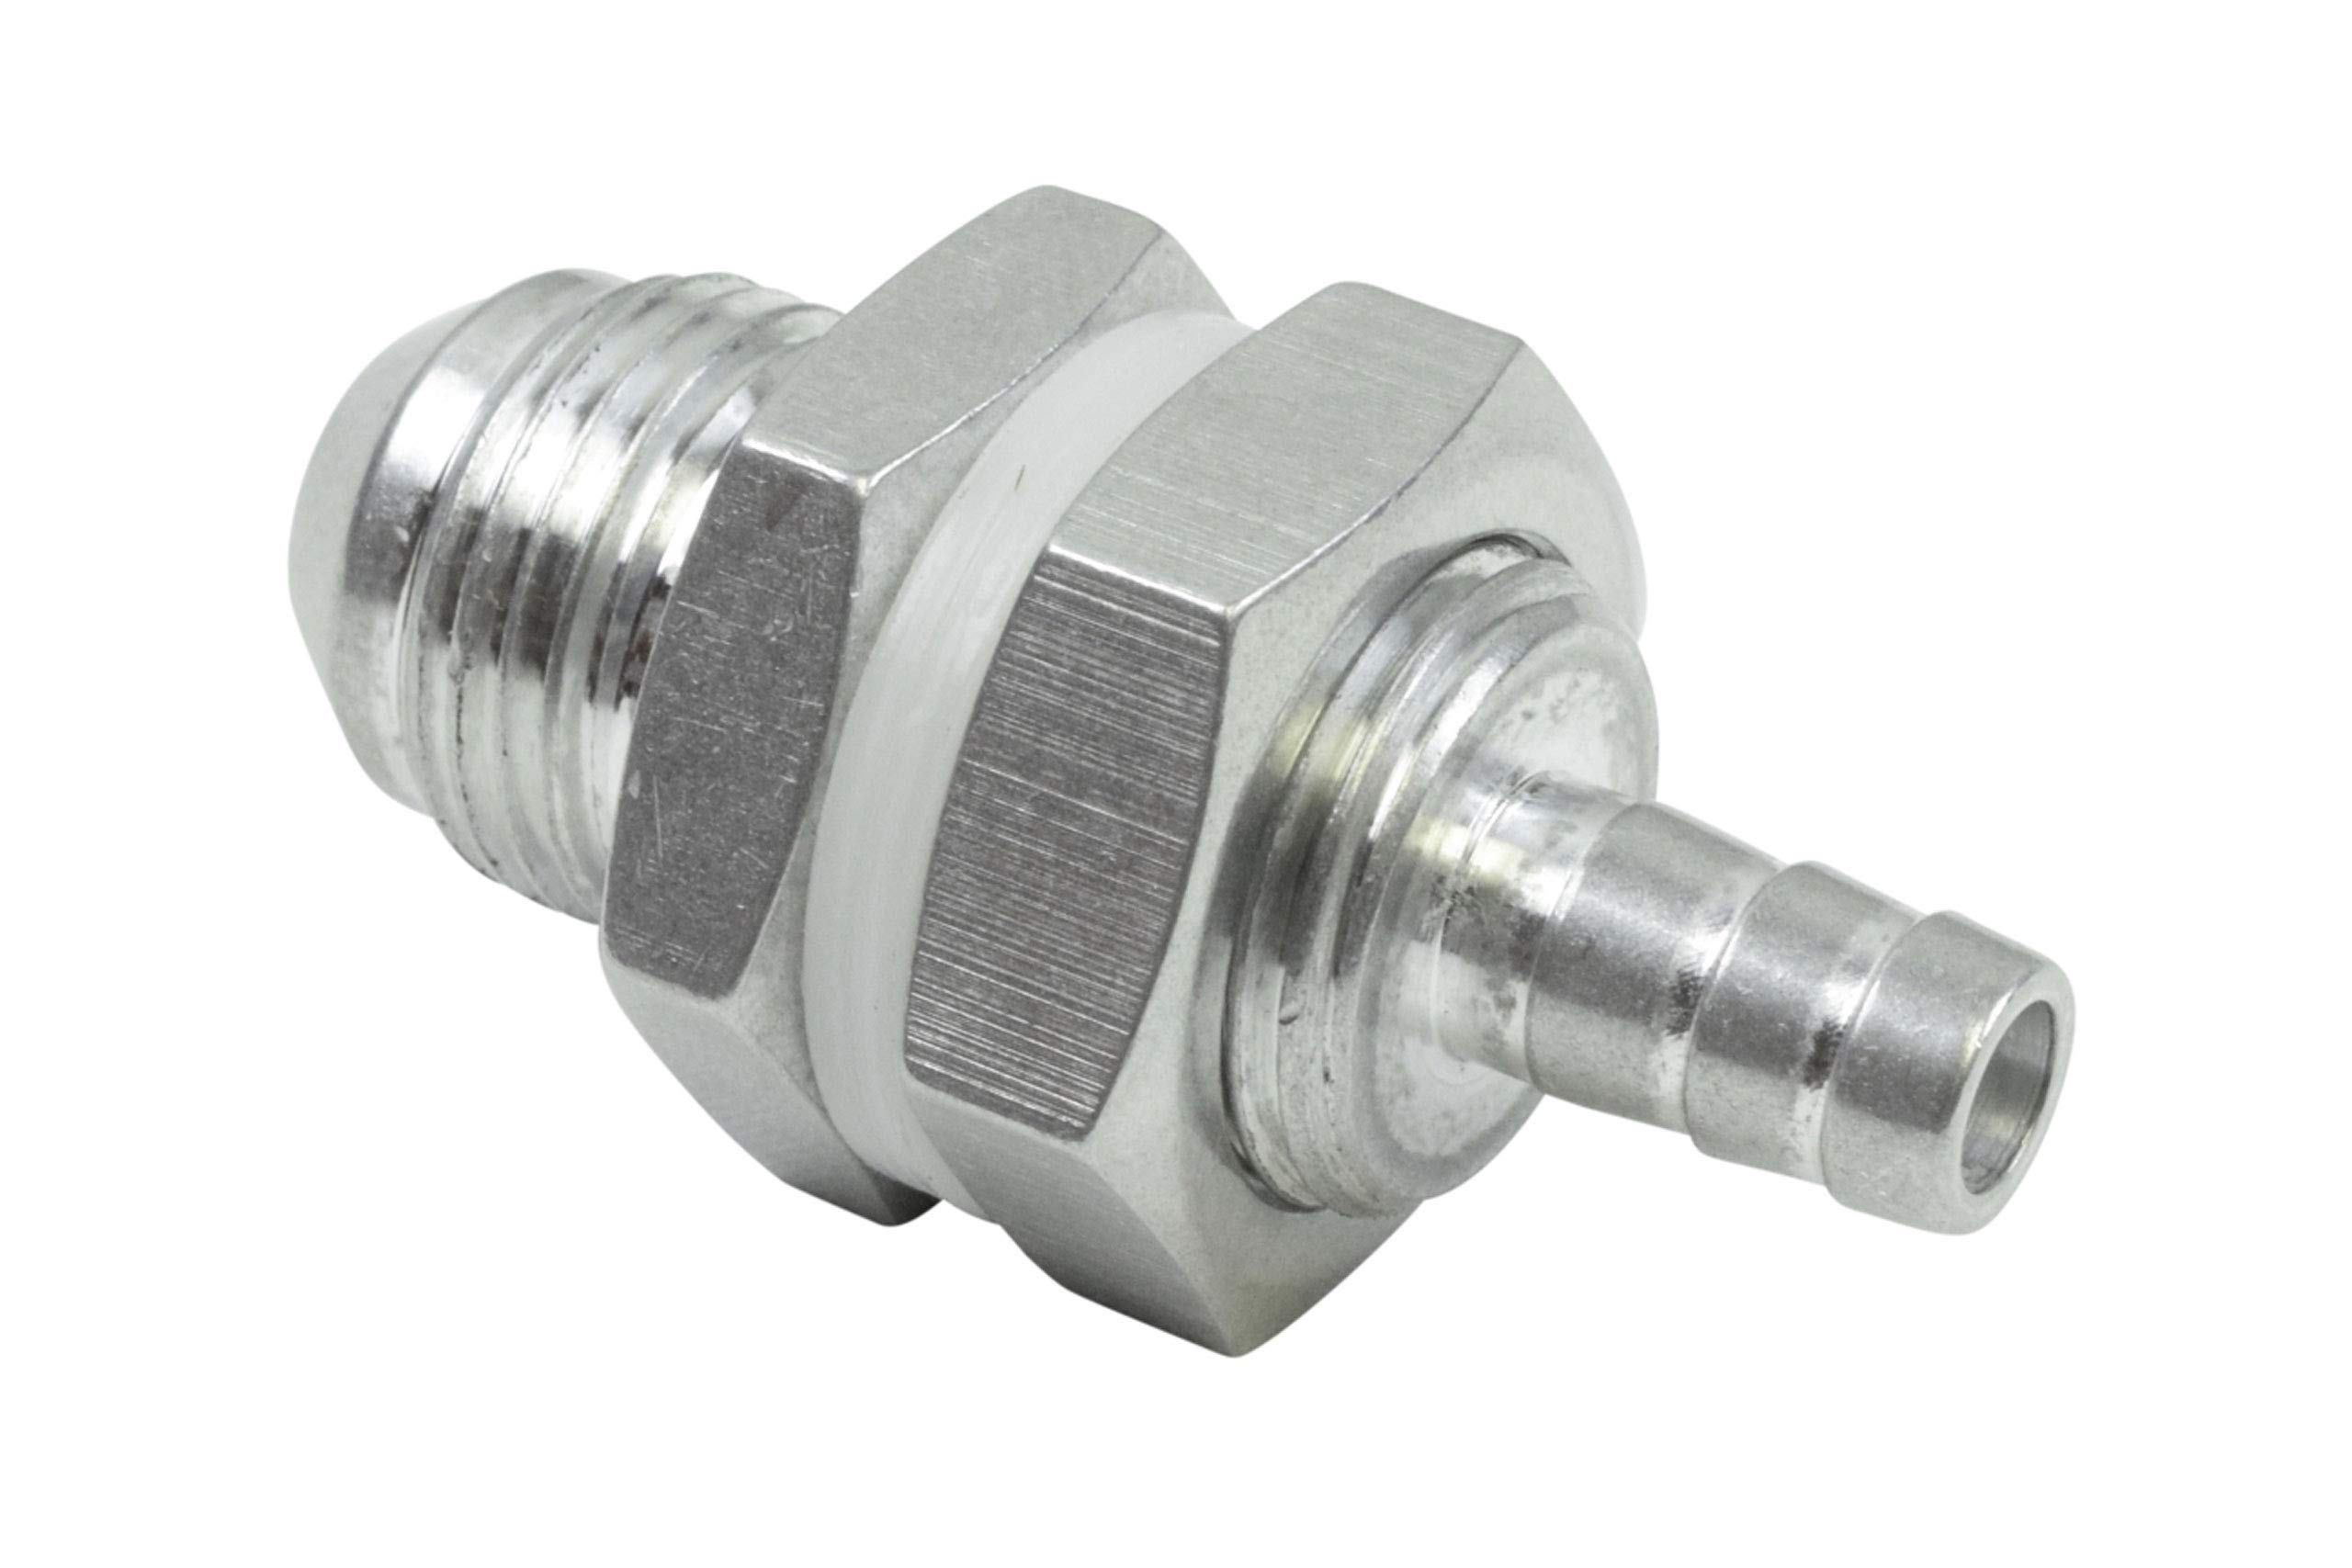 """ICT Billet -8AN Straight to 5/16"""" Hose Barb Double Fuel Pump Tank Fitting Bulkhead Adapter Fitting Hose Thread Fuel Oil Gas Coolant Connector Pipe End Plumbing Port Fluid Aluminum AN861-08-31A"""